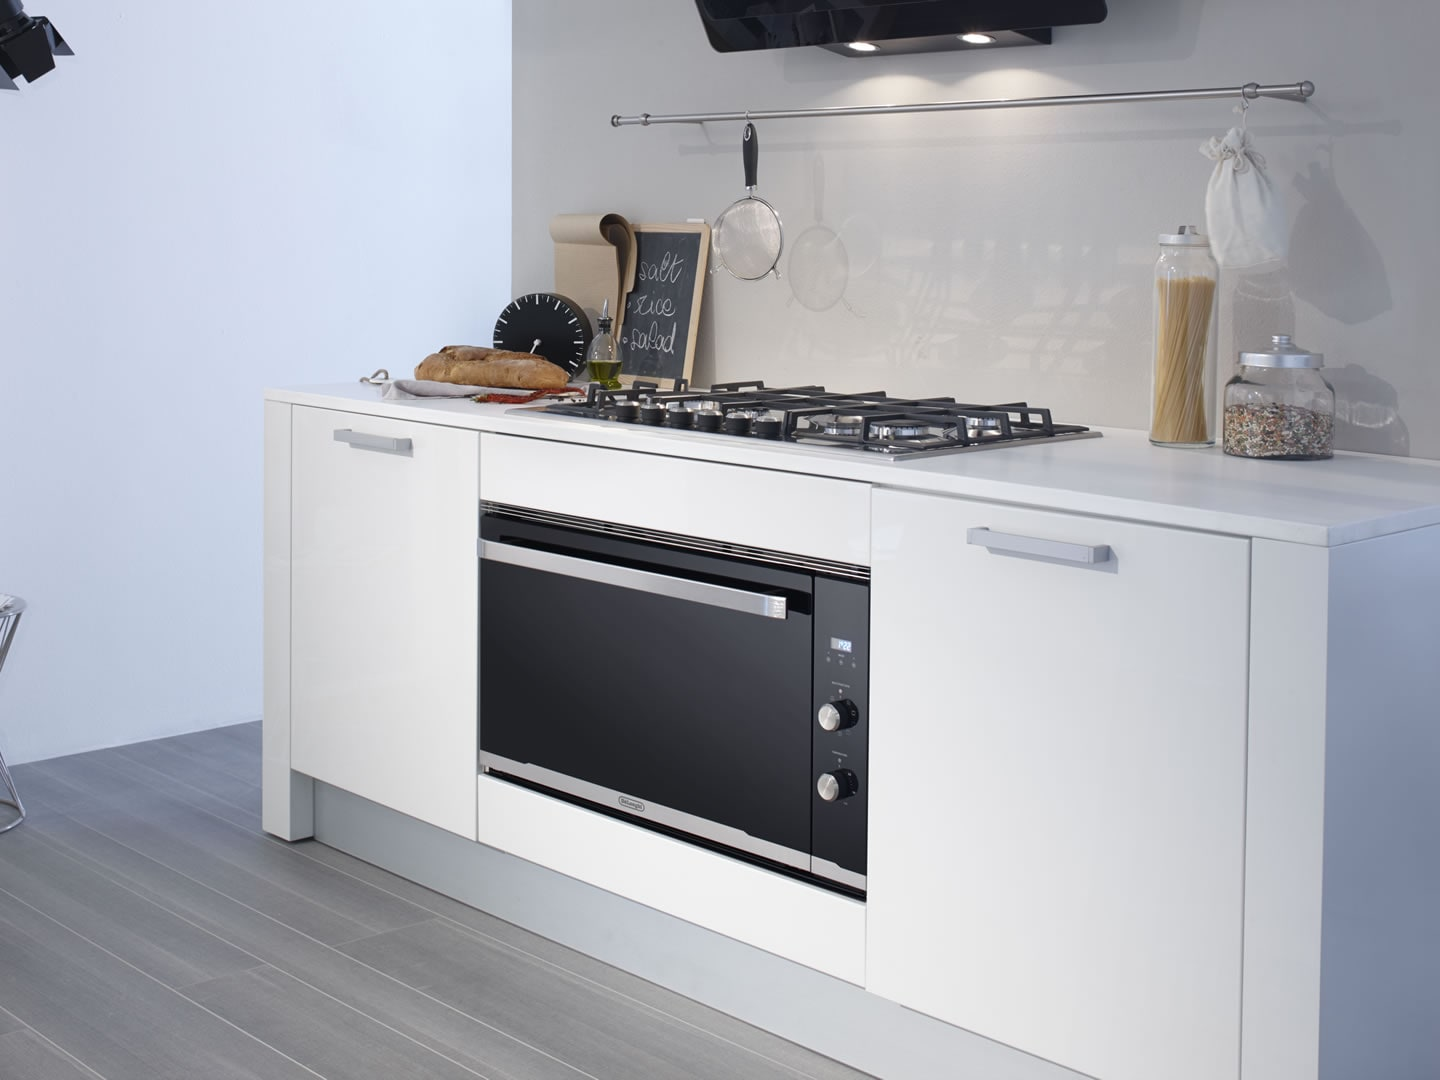 DEP909M - 90cm 9 Function Built In Premium Oven Lifestyle